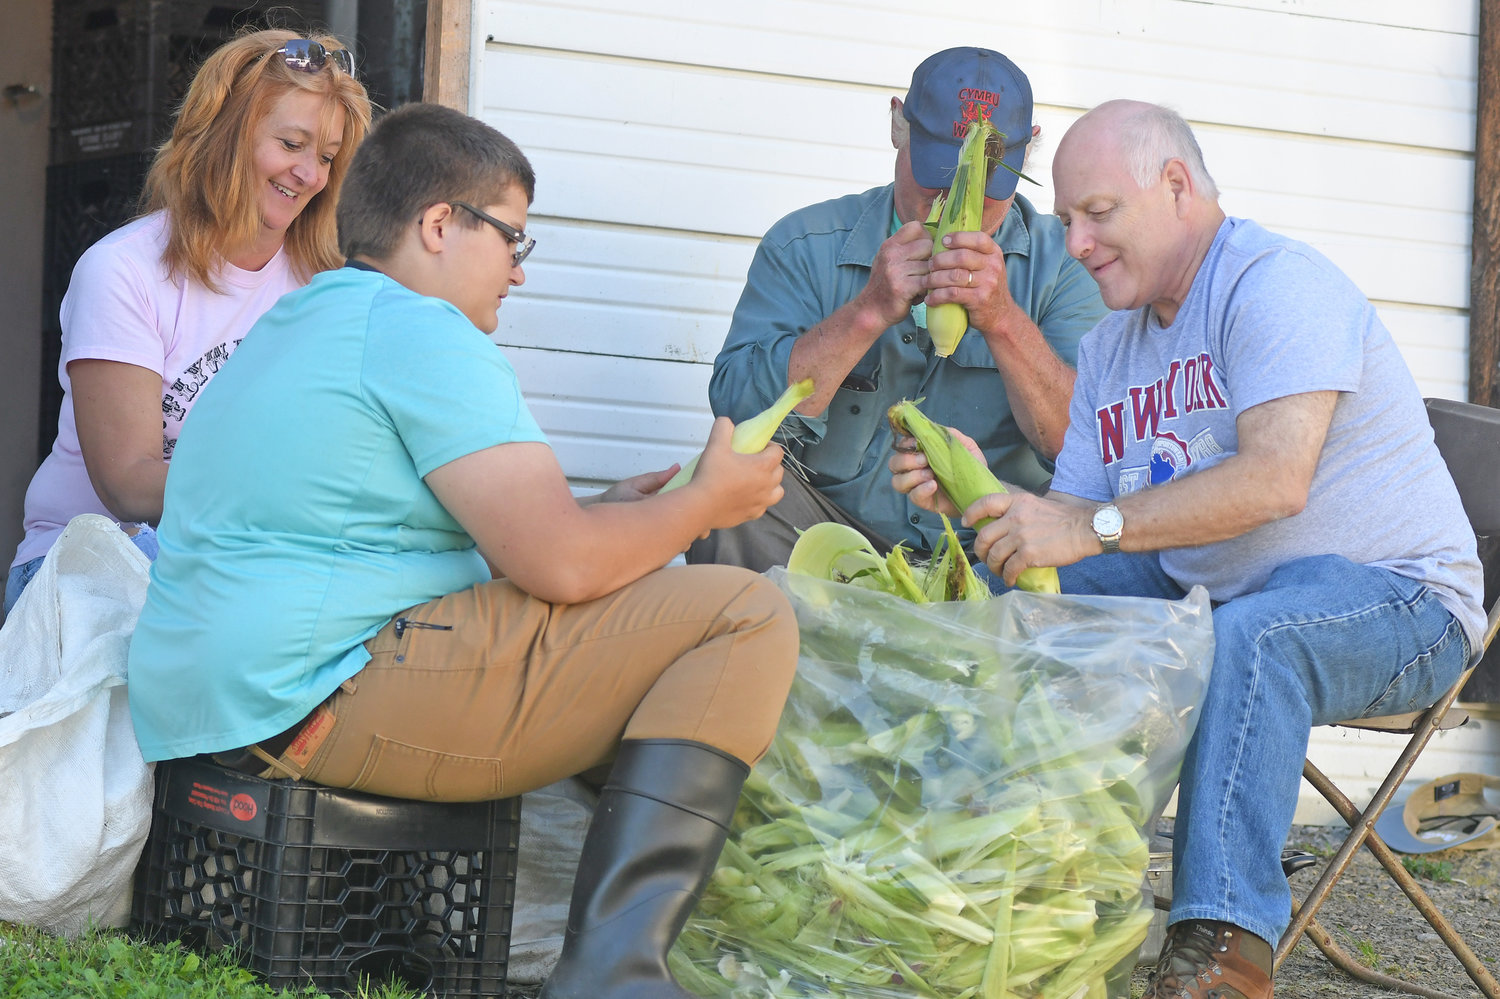 Corn is shucked for the  annual fish fry and at the Flywheel & Pully's Old Time Gas & Steam Engines/Flea Market Friday night in Constableville. Husking the corn left to right are: Mary Miller and her son Wareen Russell, Hobart Kraeger and Bud Shepherd.